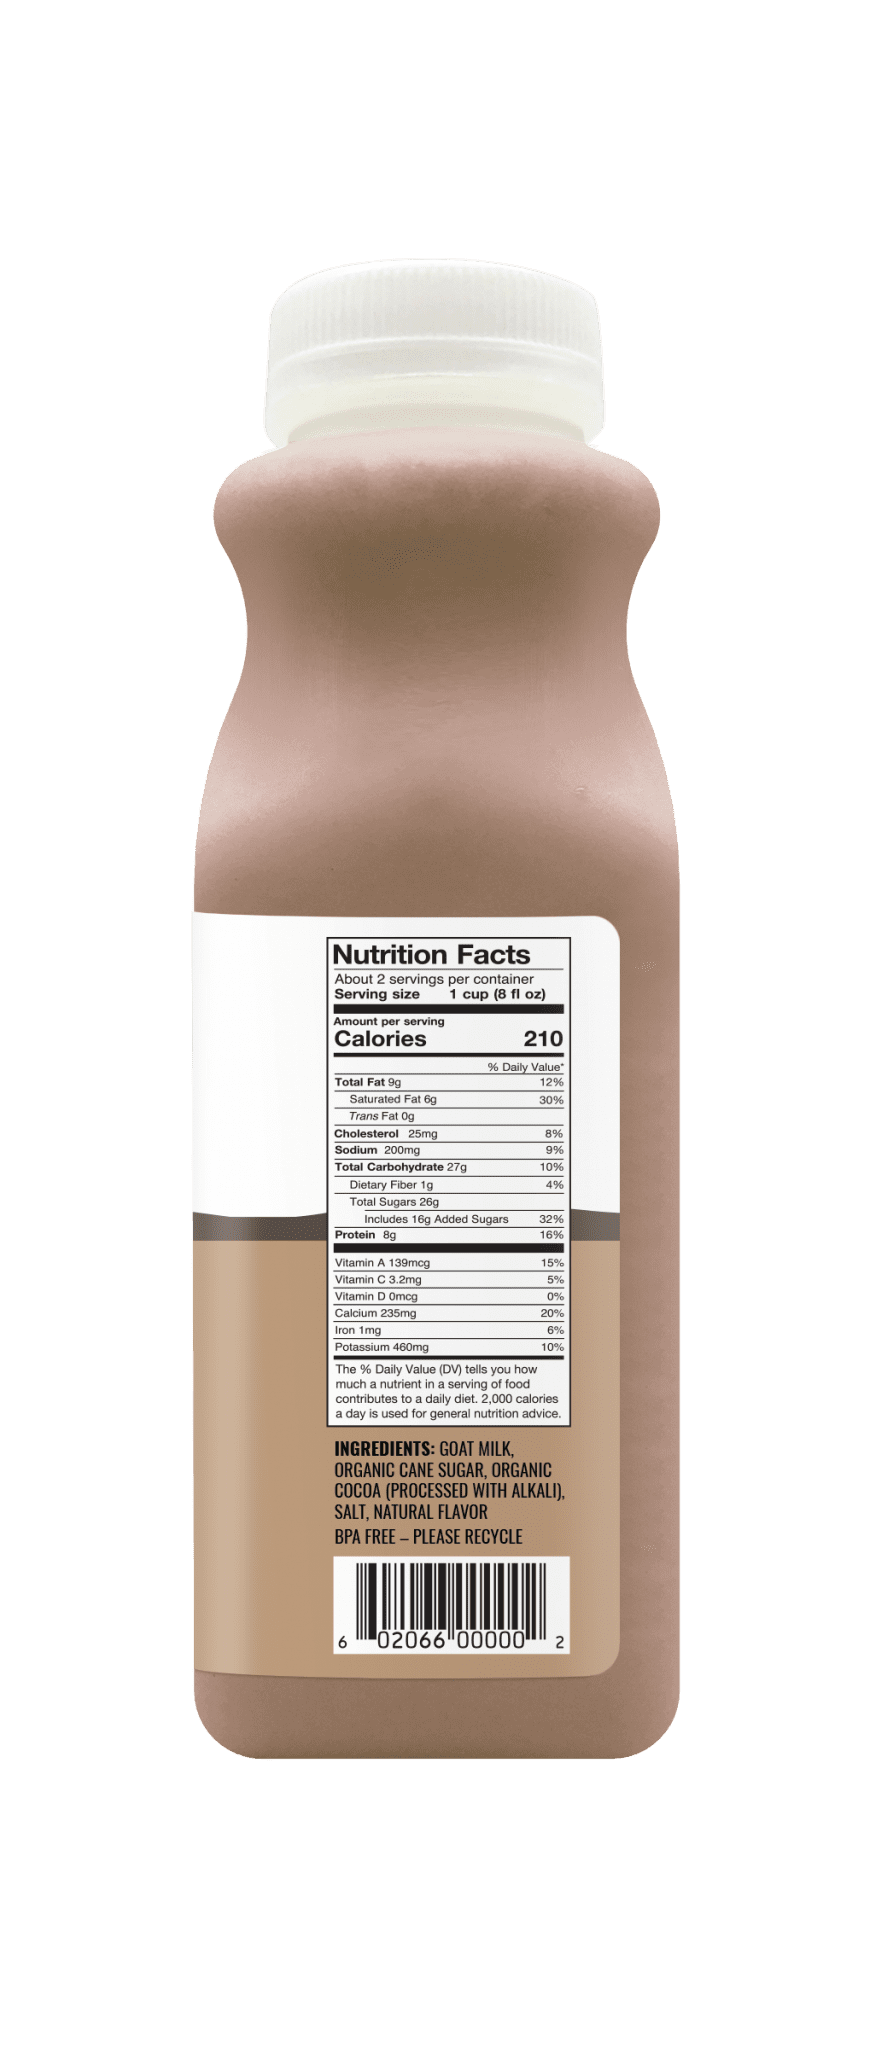 Chocolate goat milk 14oz nutrition facts